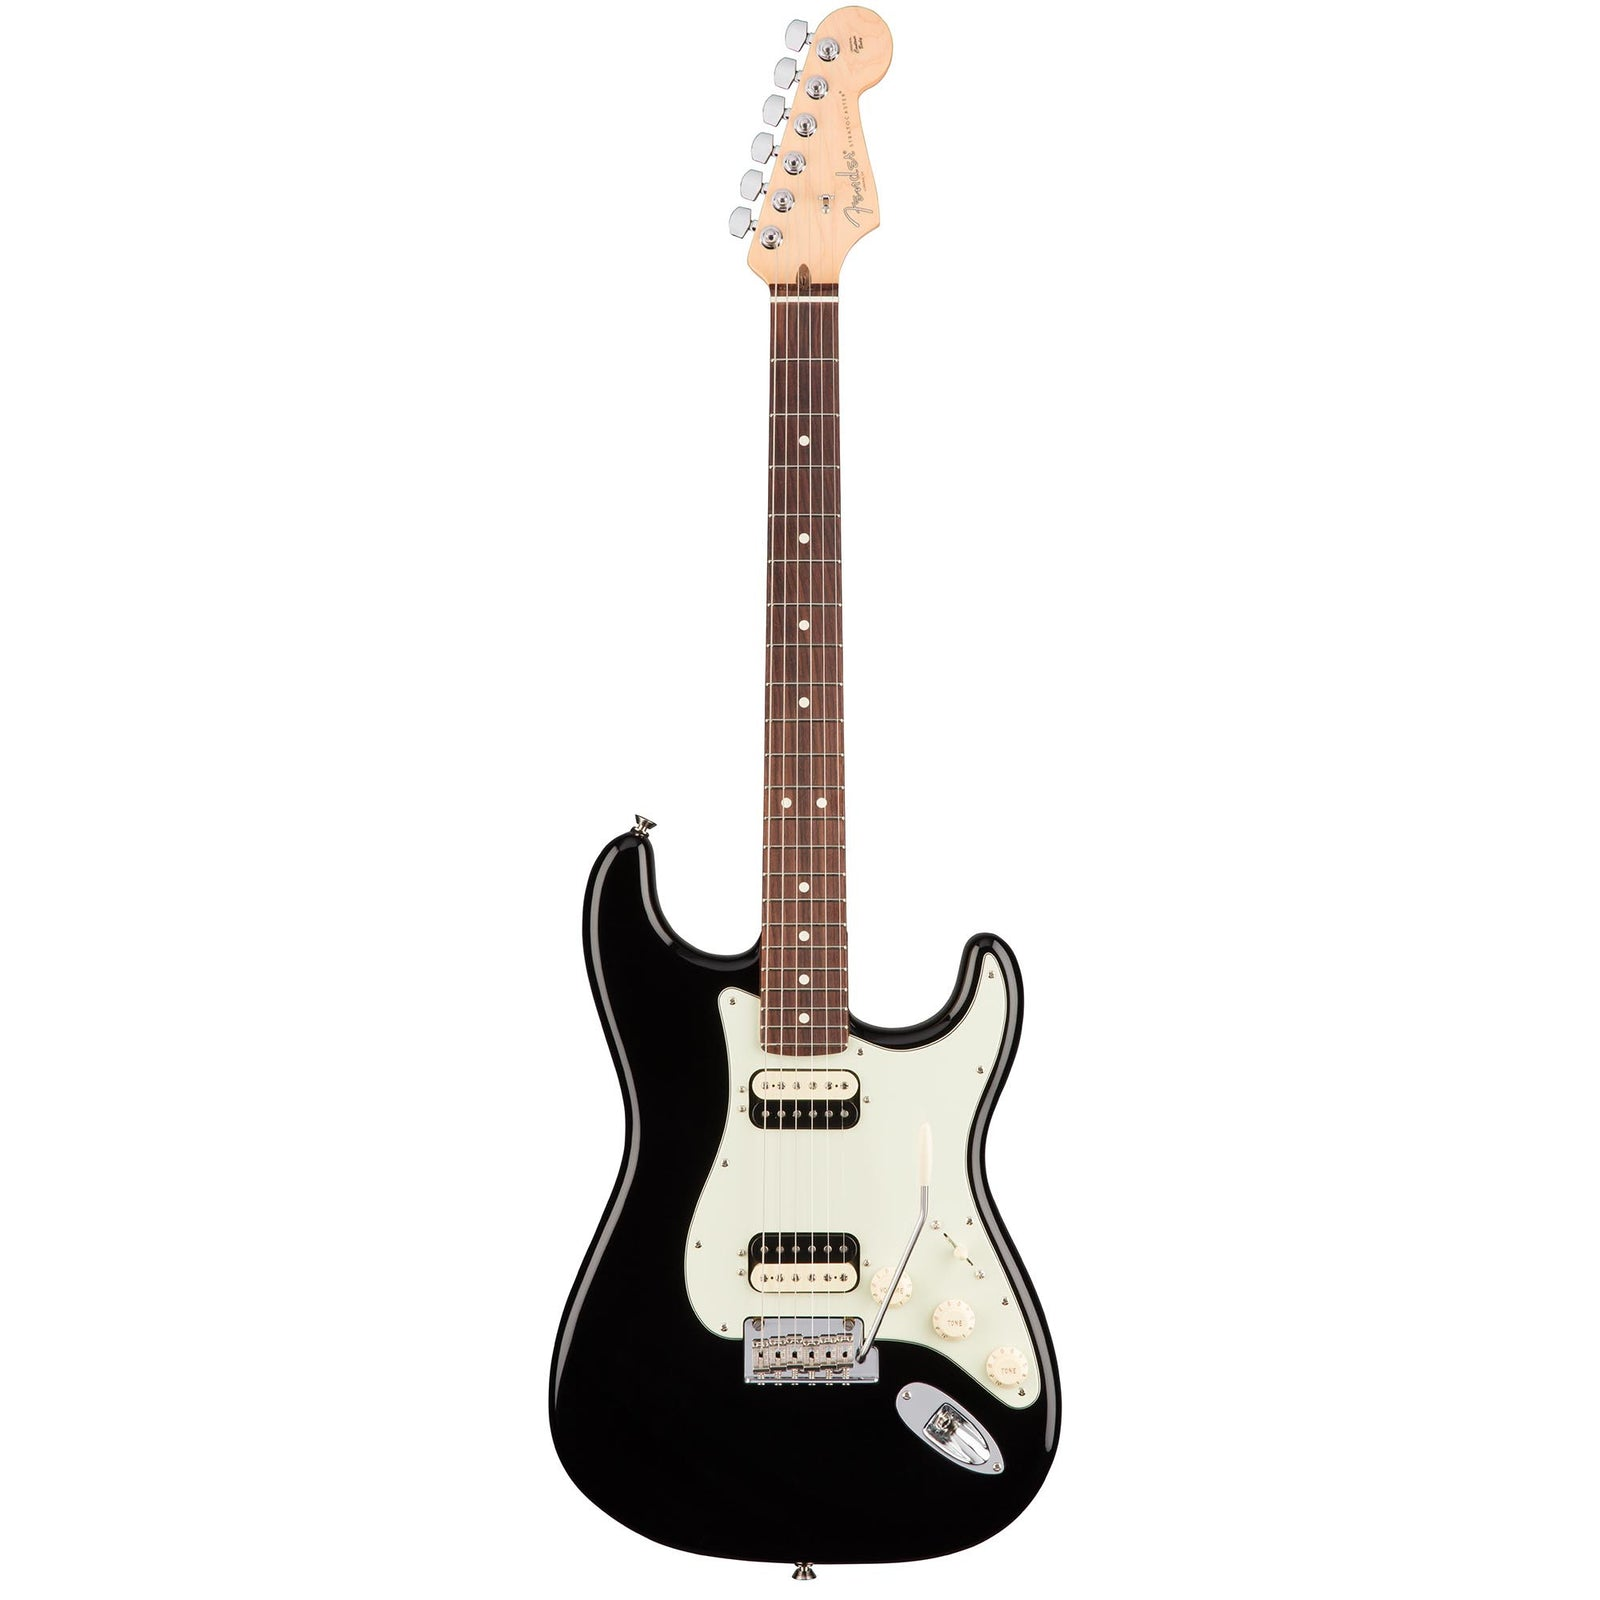 Fender American Professional Stratocaster HH Shawbucker - Black - Rosewood